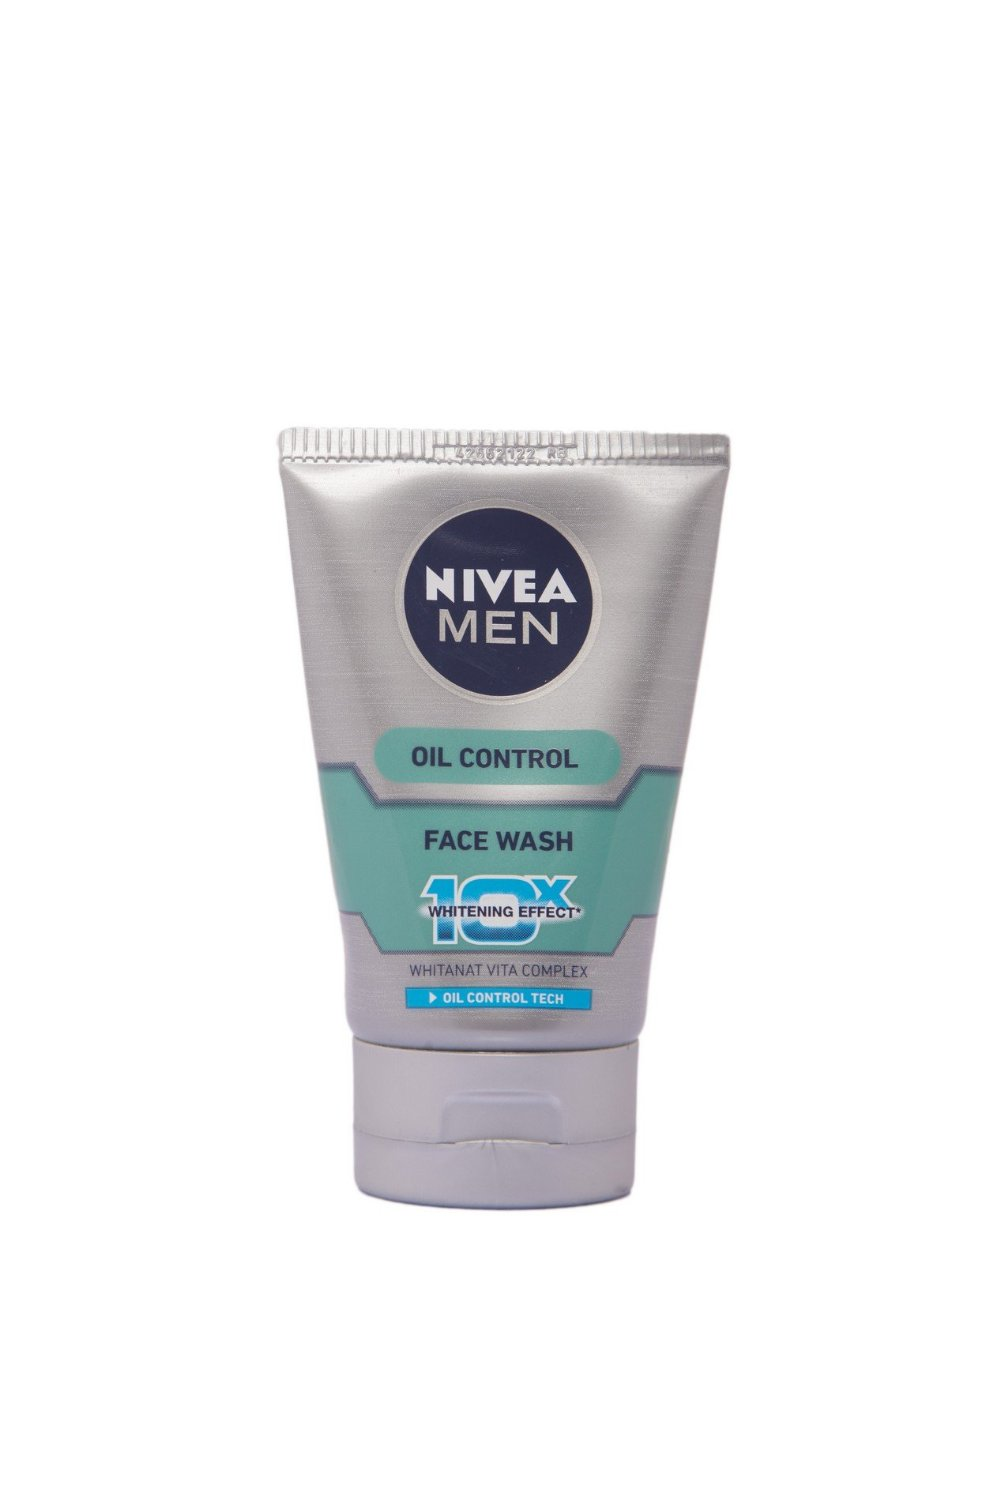 Best Face Wash for Men in India for oily skin - Nivea Men Oil Control Face Wash